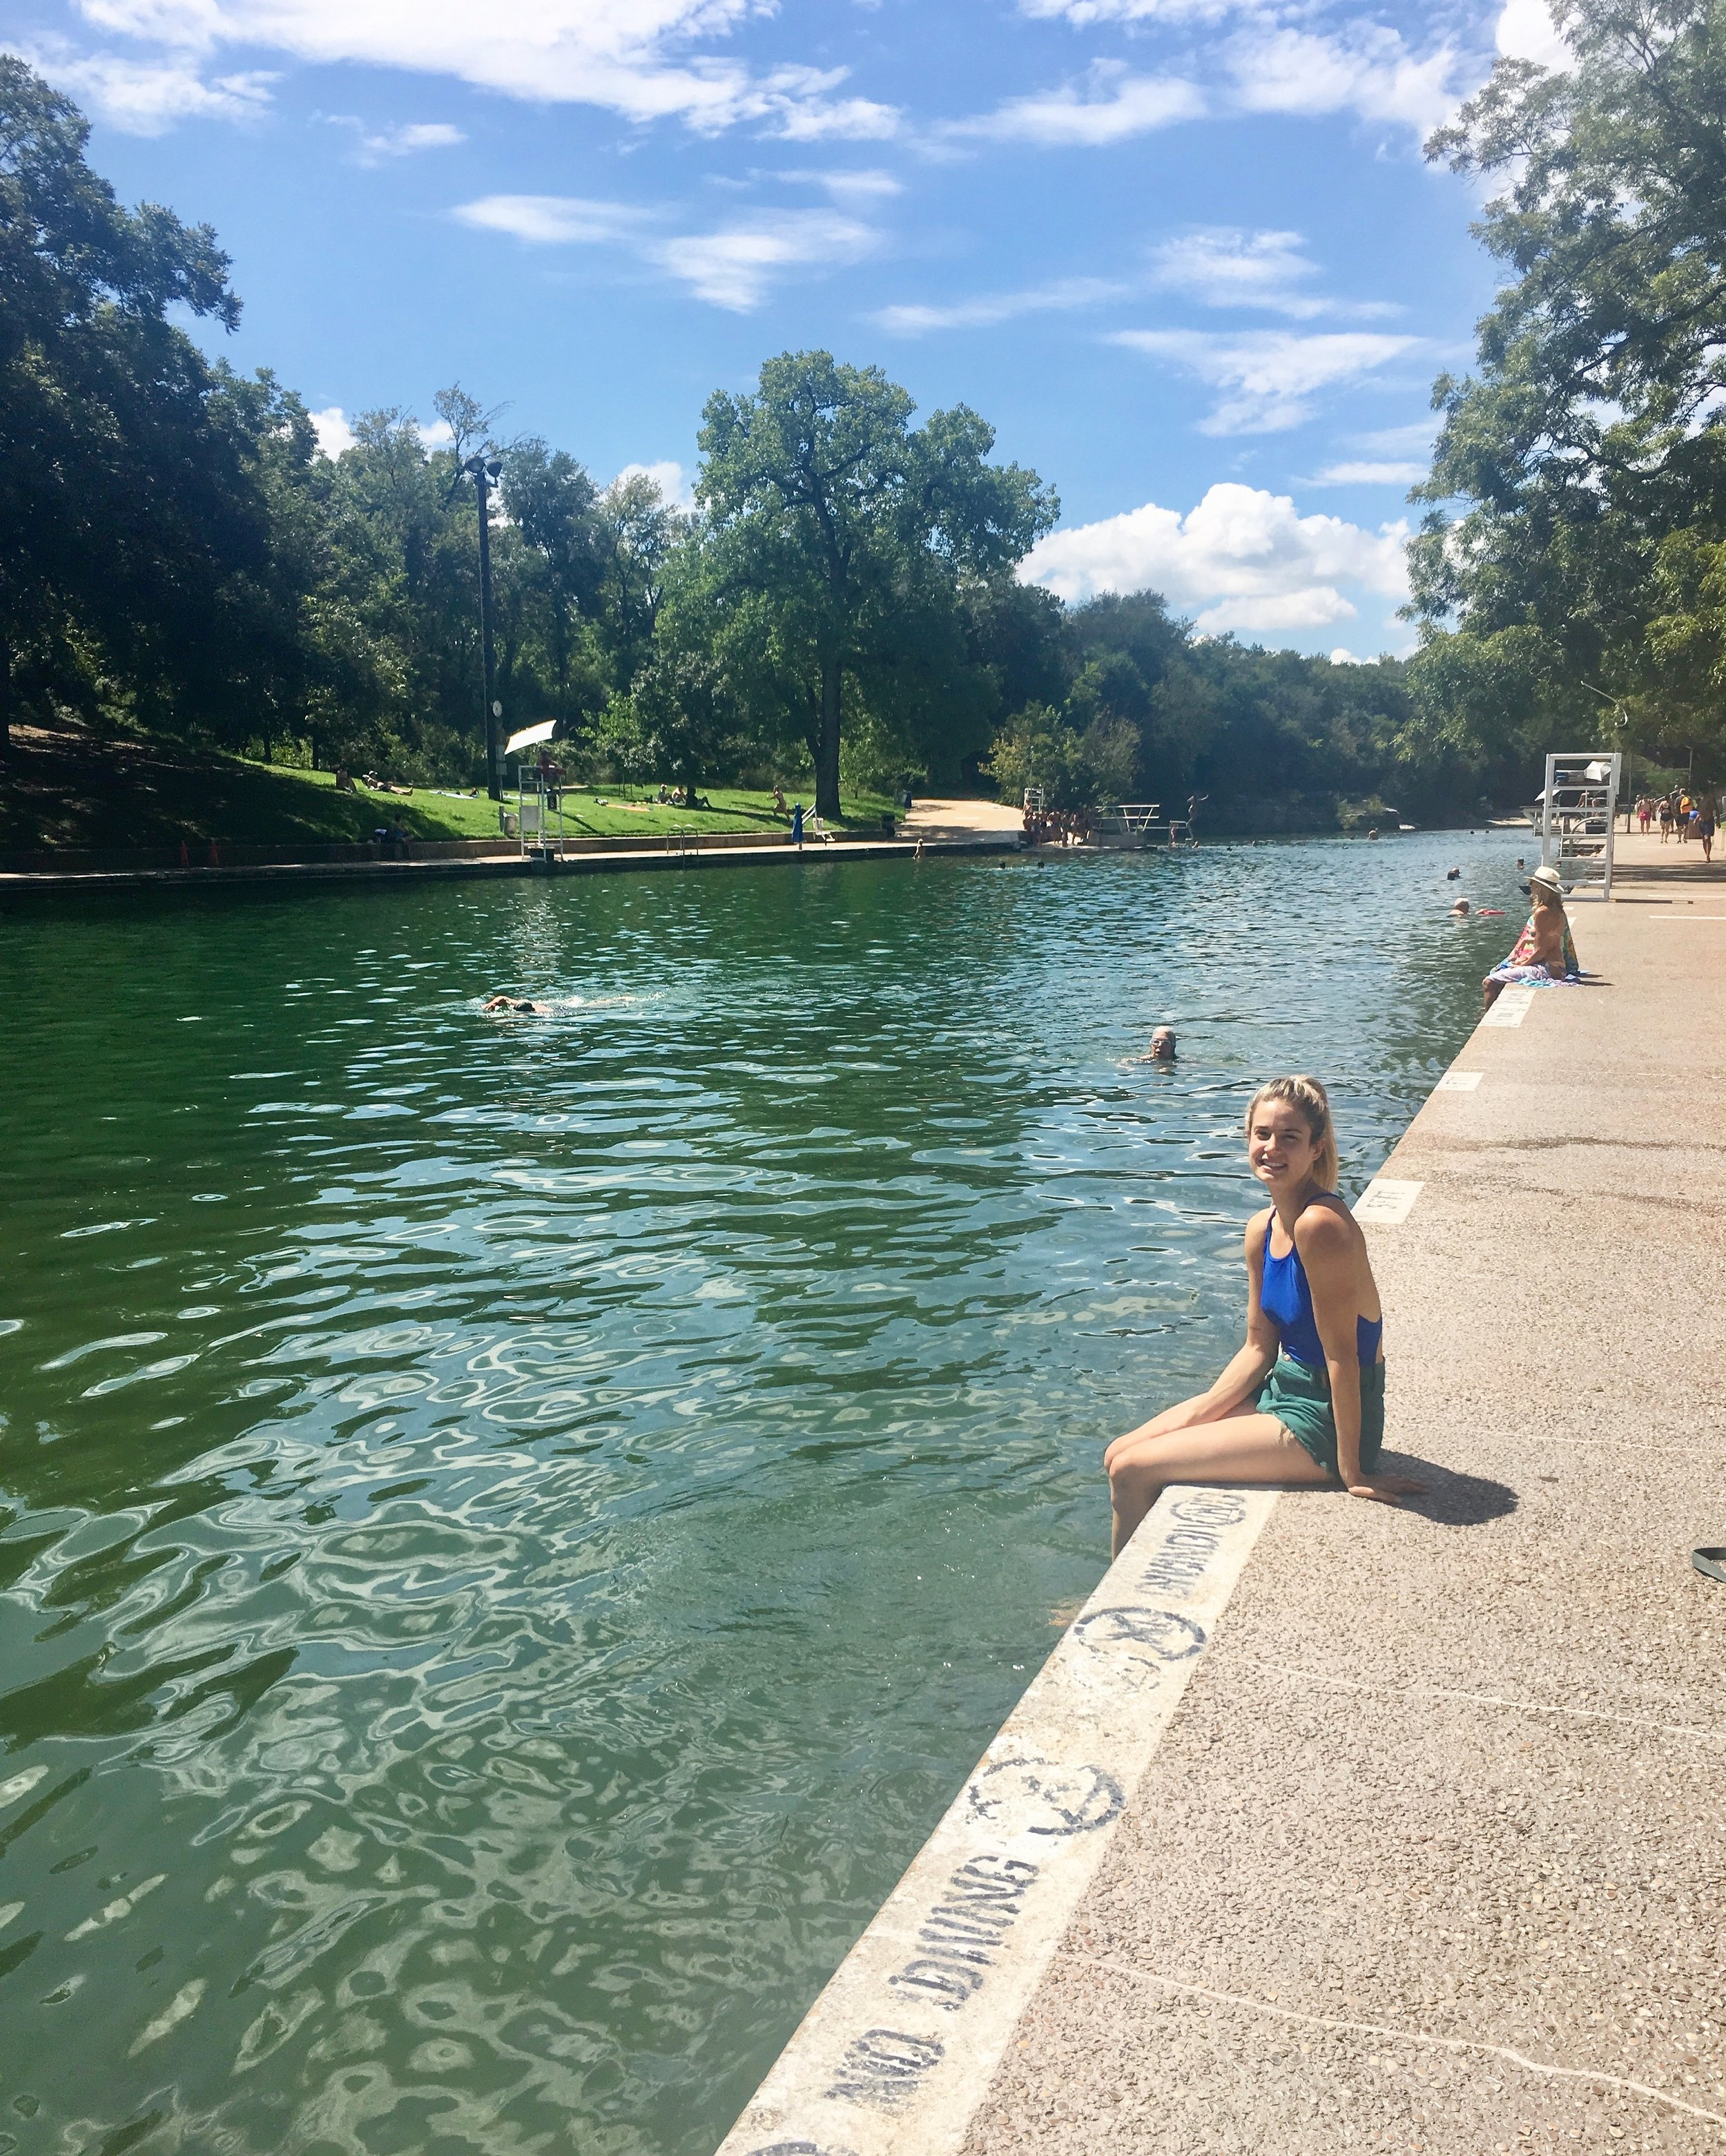 Me at Barton Springs - a 900 foot natural spring pool in the middle of Austin!